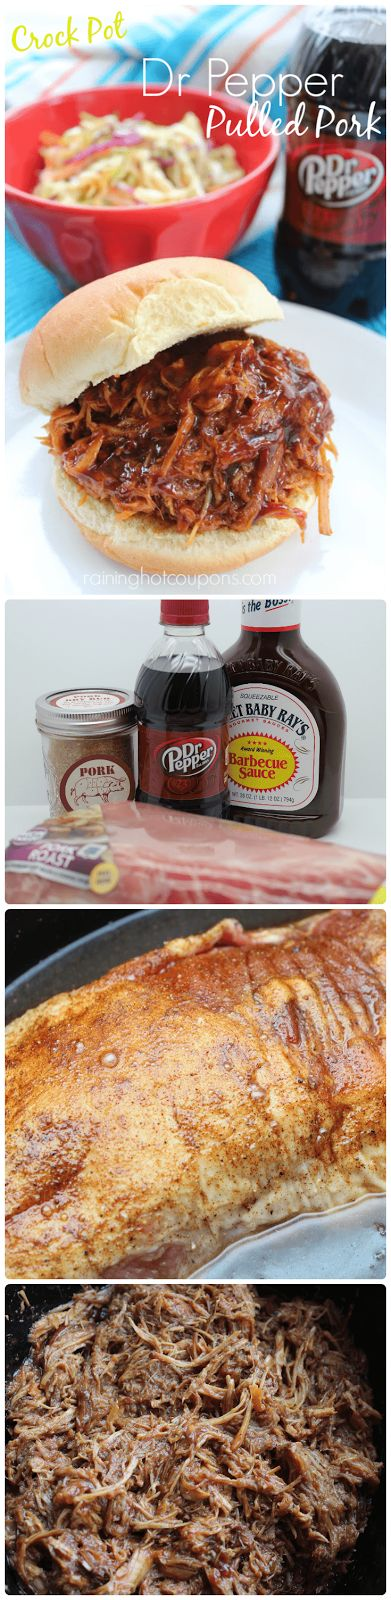 Crock Pot Dr. Pepper Pulled Pork - You Must Try This :)